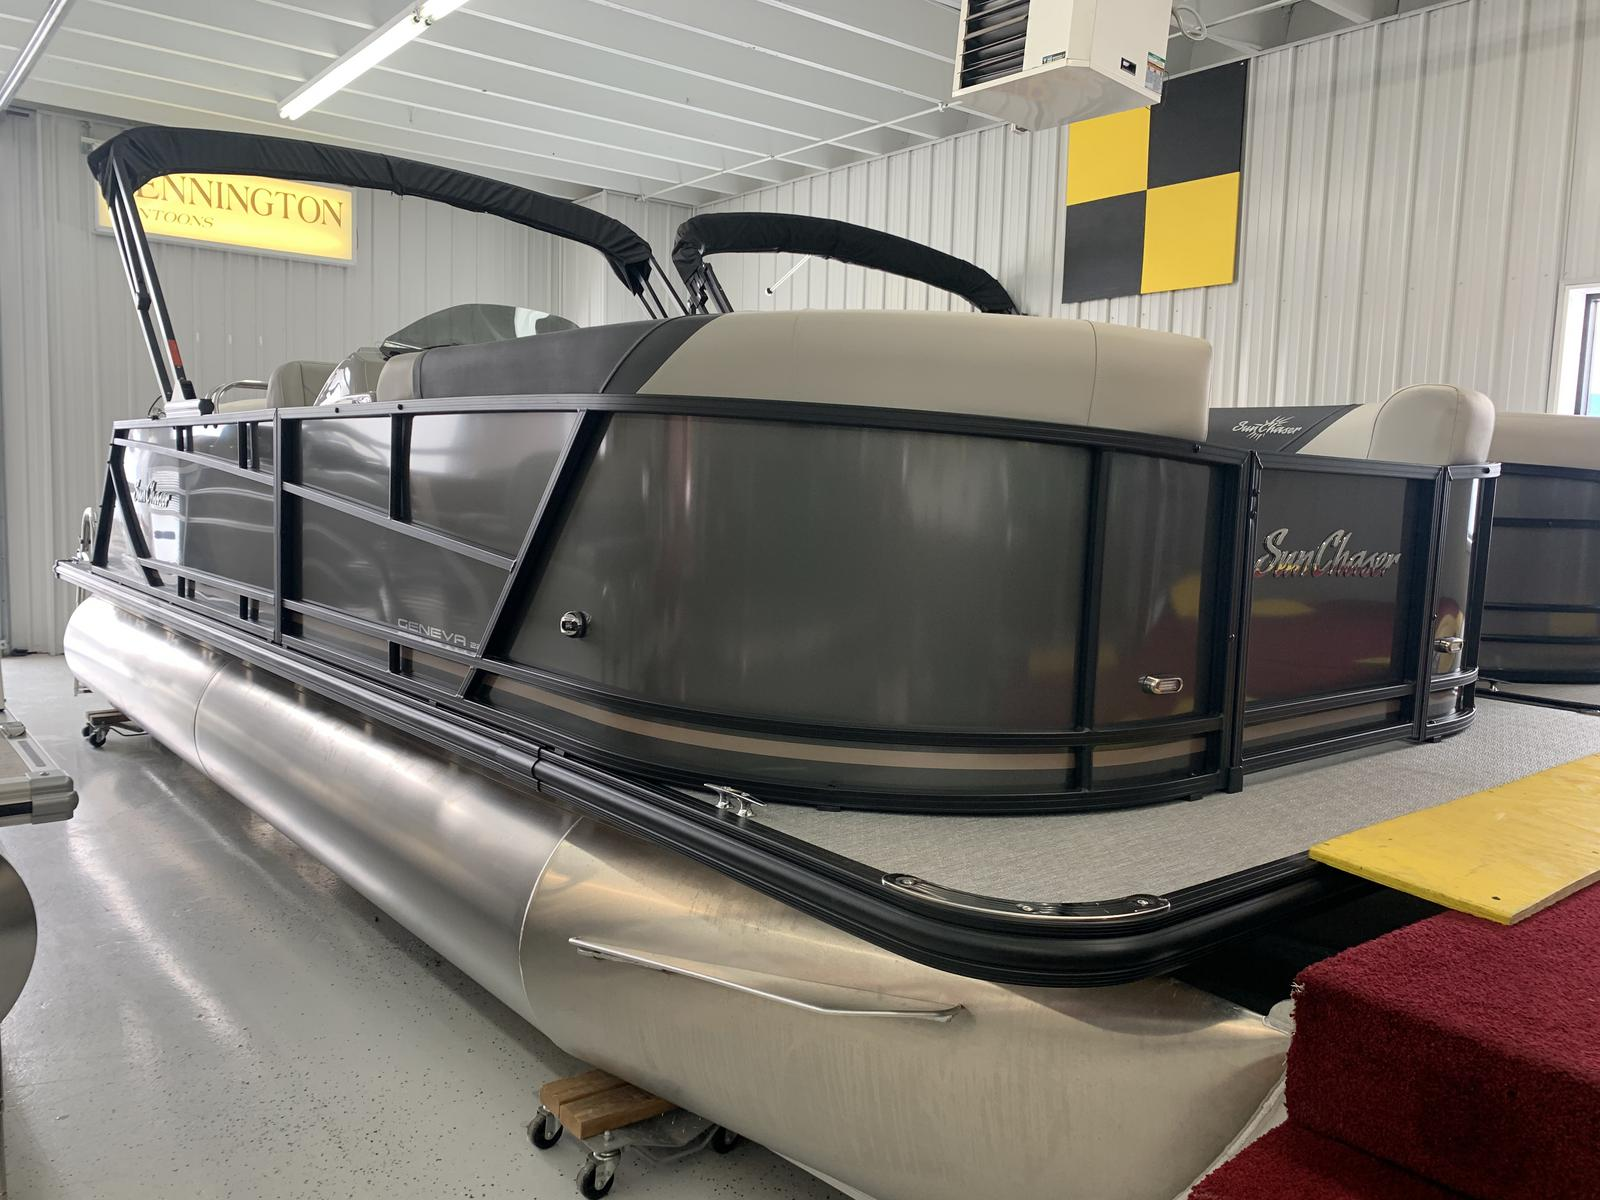 2021 SunChaser boat for sale, model of the boat is Geneva Cruise 22 SB & Image # 1 of 14